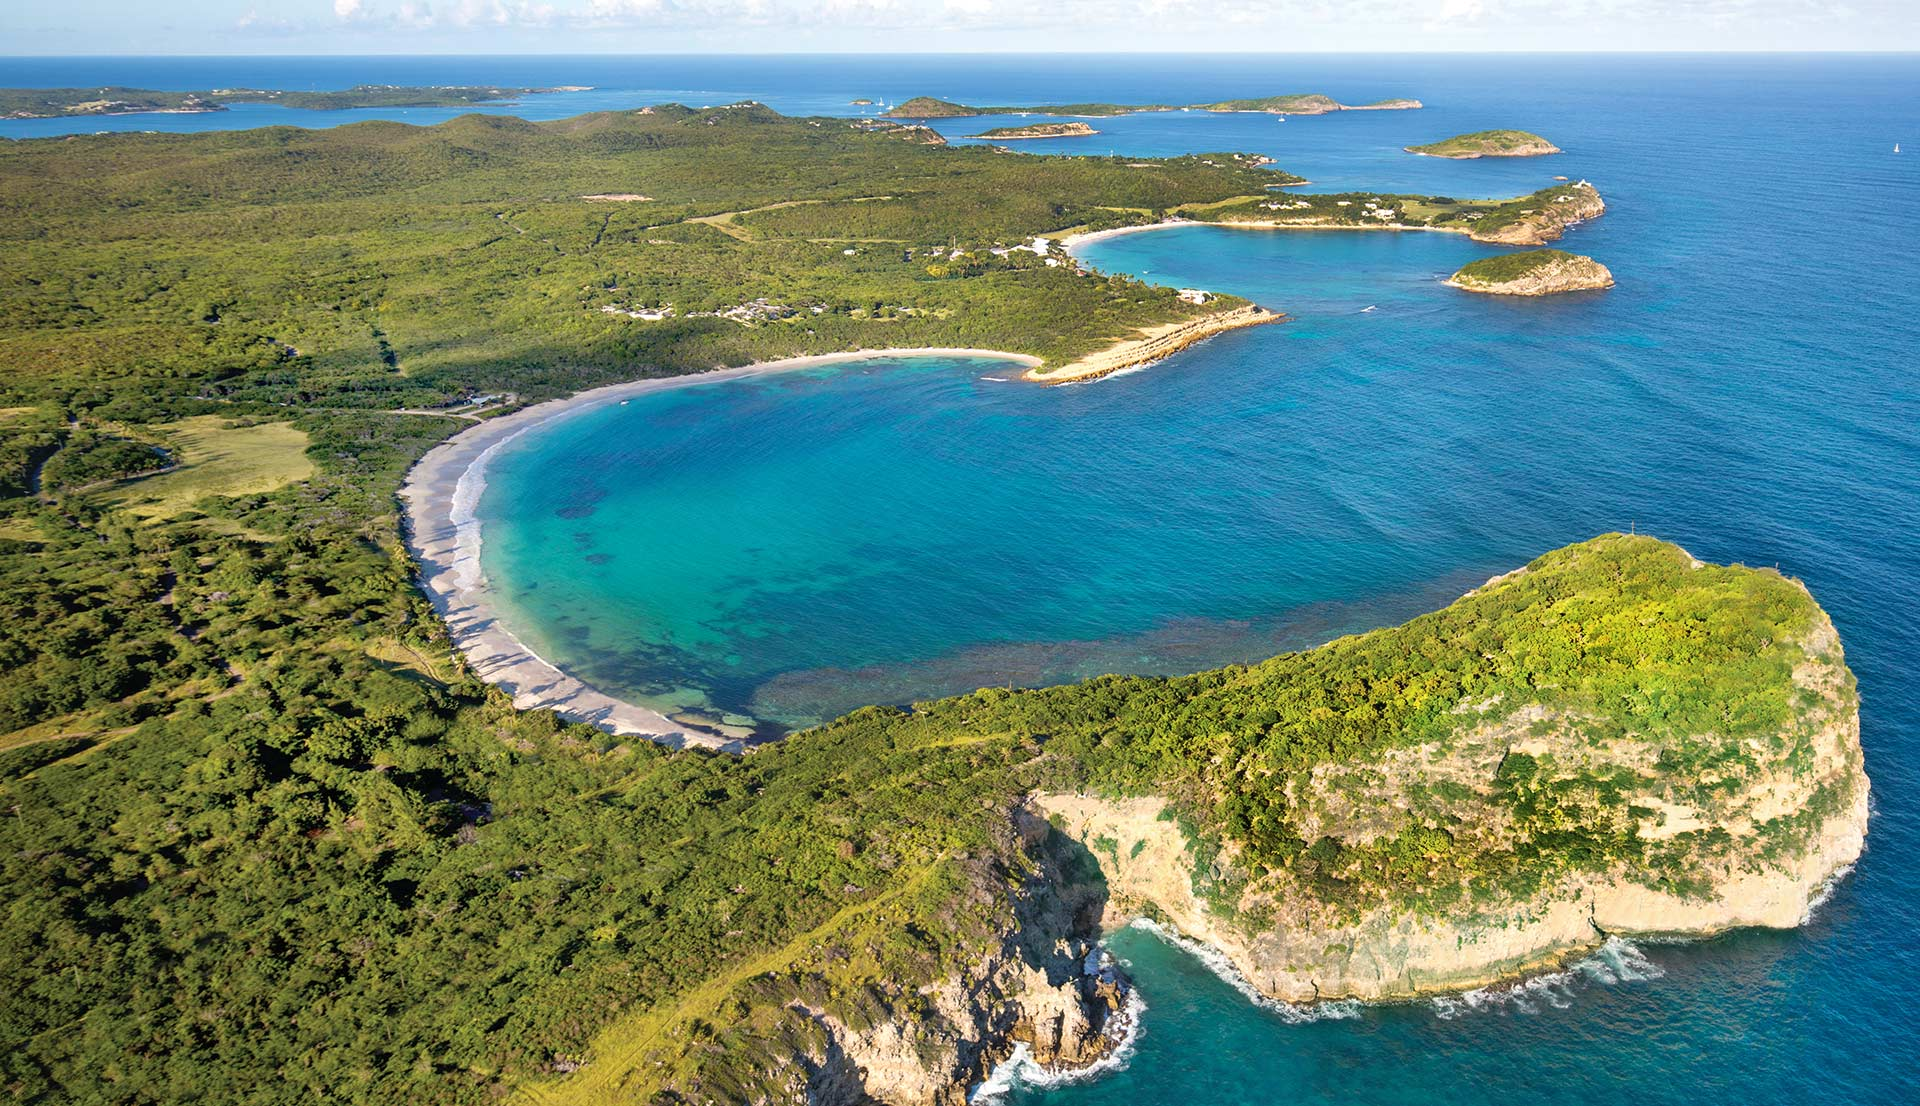 Replay Resorts Acquires Half Moon Bay Resort Lands from the Government of Antigua